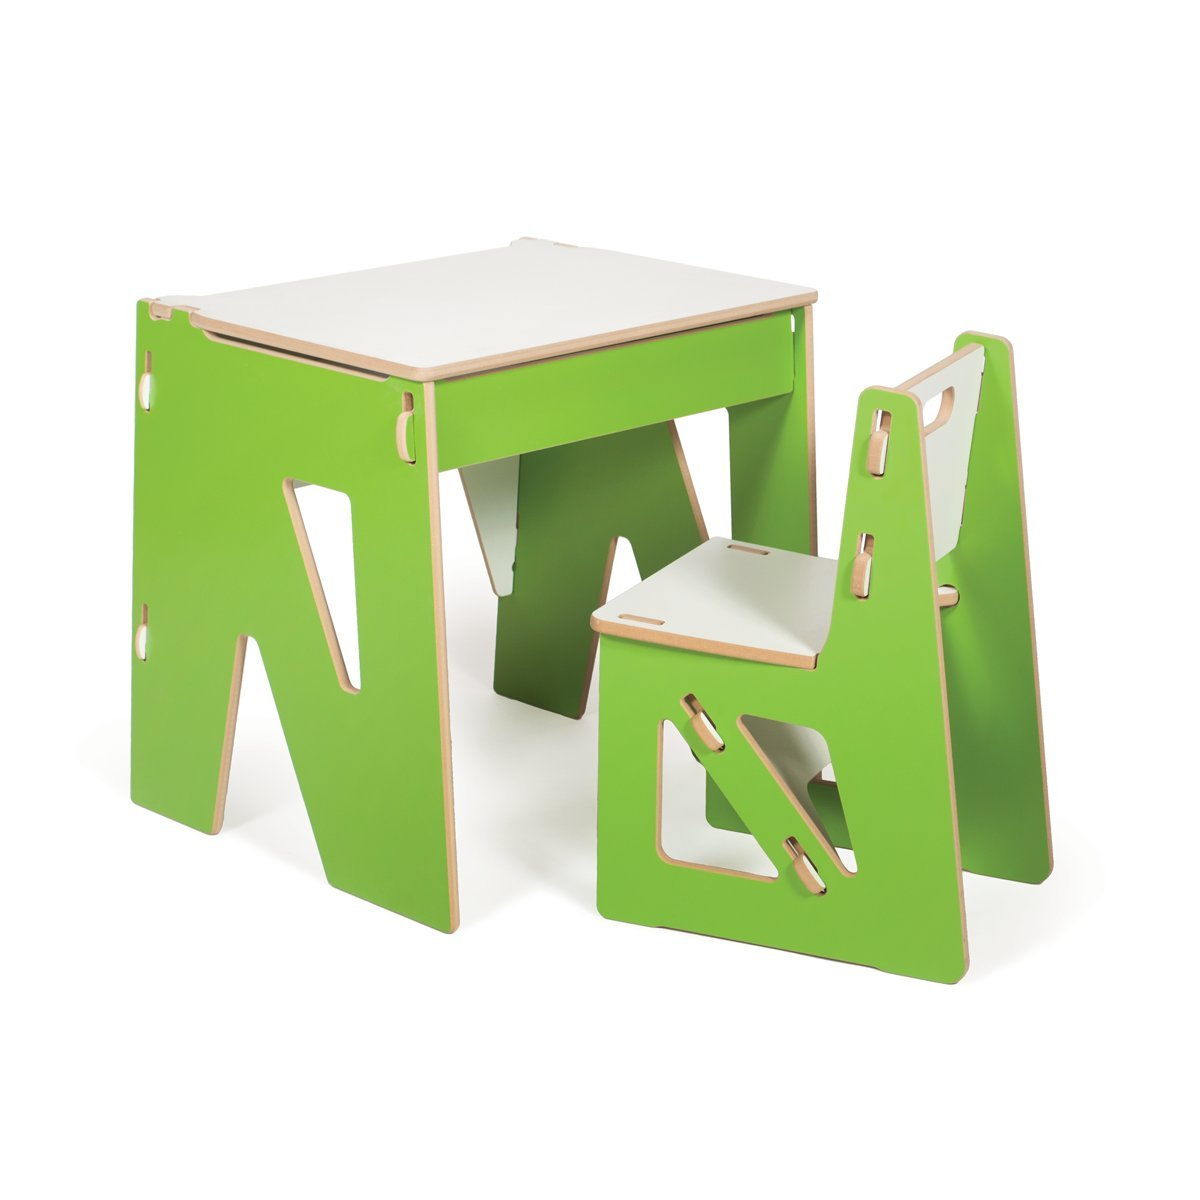 Modern Kids Desk and Chair with Storage, Green, American Made